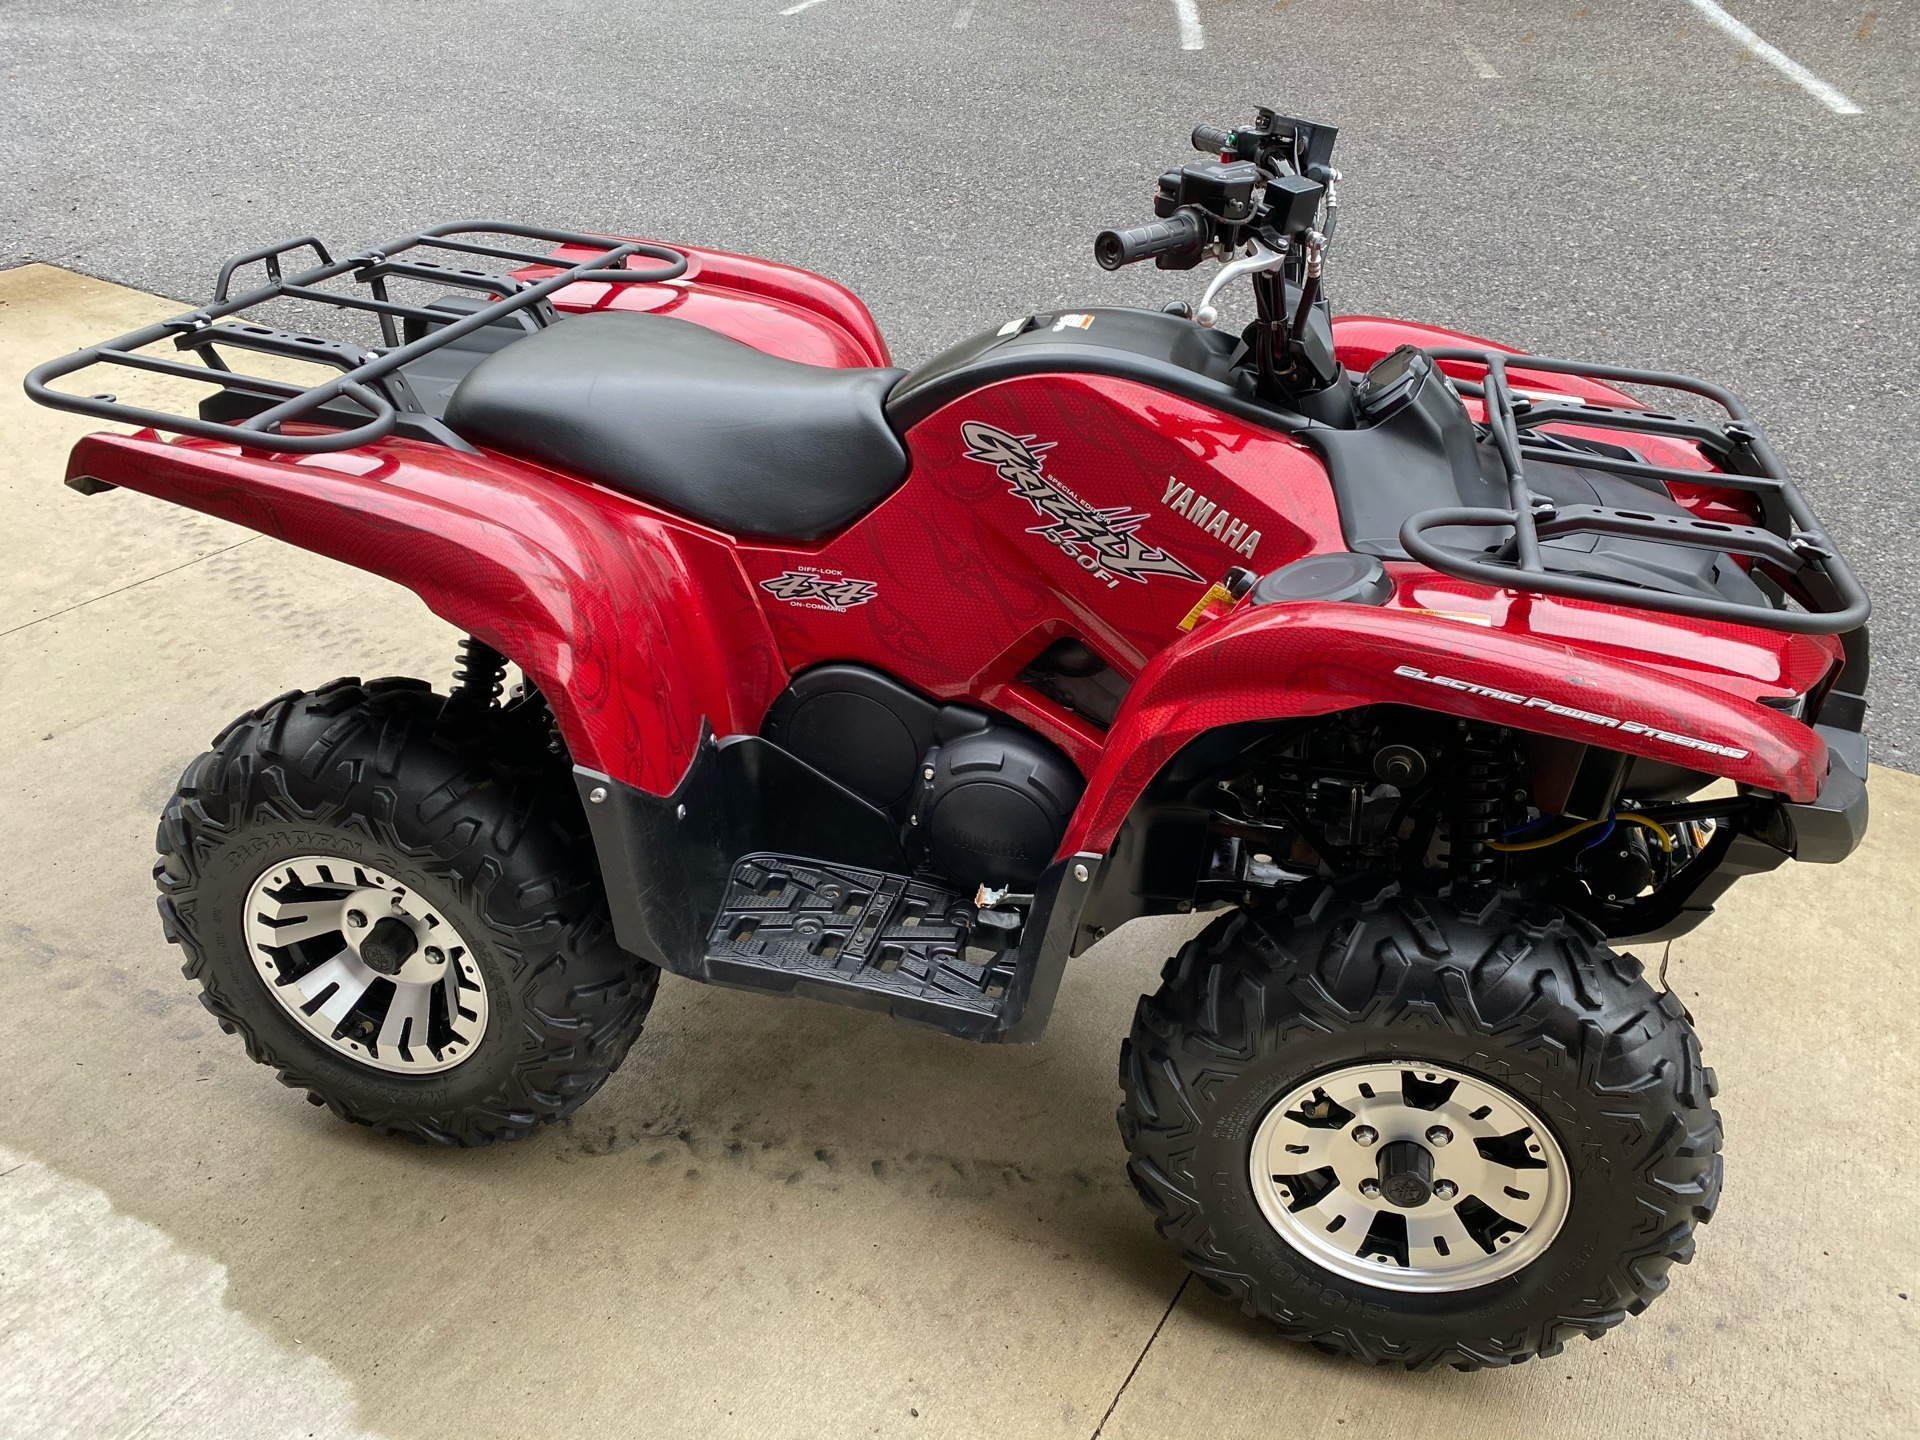 2009 Yamaha Grizzly 550 FI Auto. 4x4 EPS Special Edition in Tyrone, Pennsylvania - Photo 3